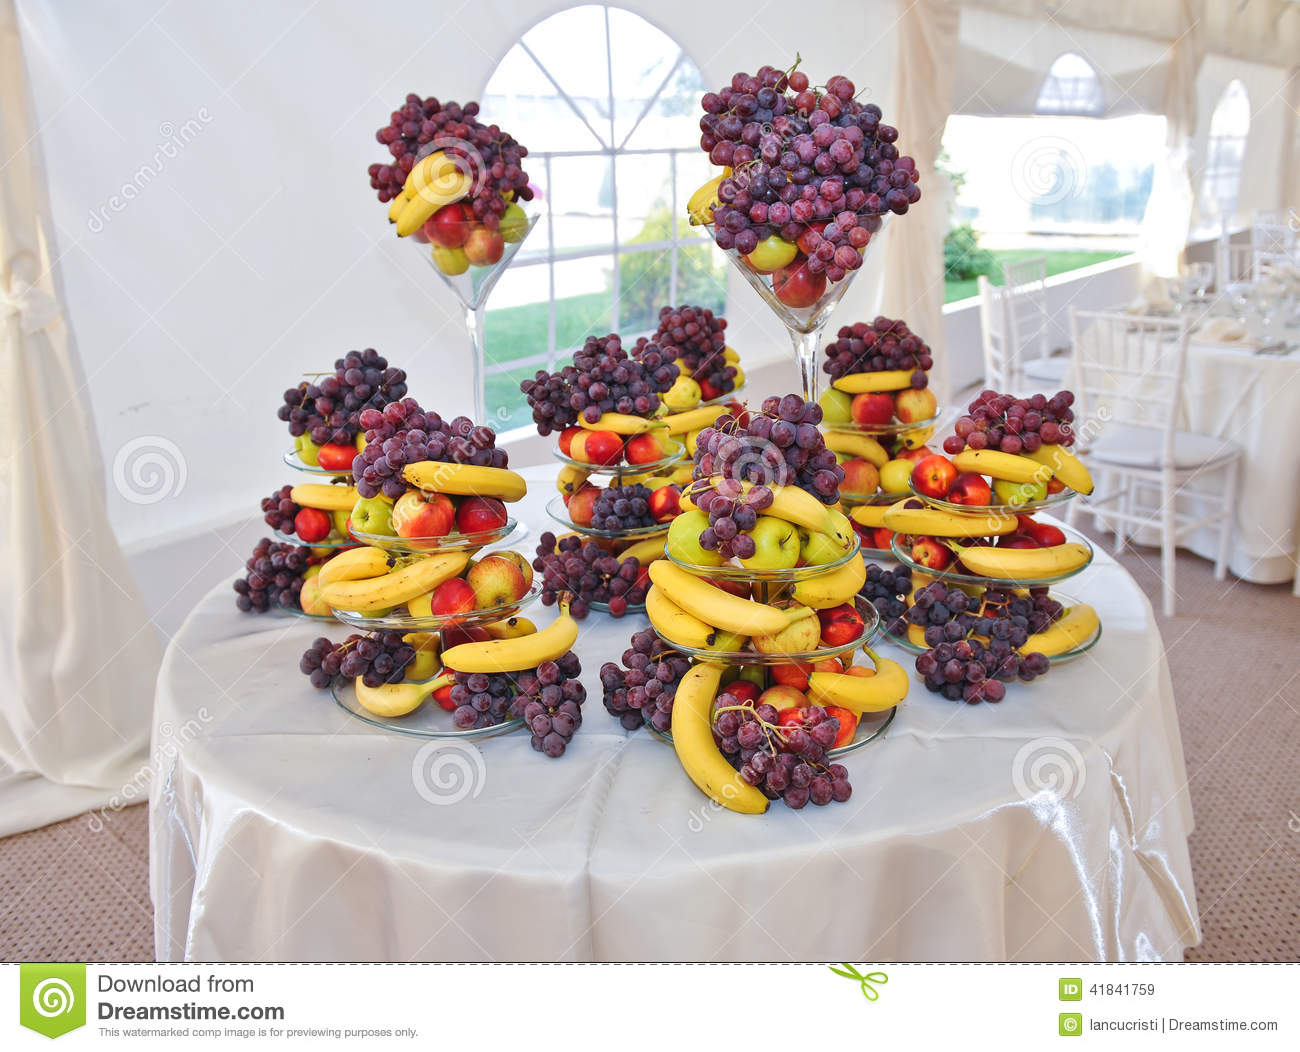 Wedding Decoration With Fruits, Bananas, Grapes And Apples Stock ...